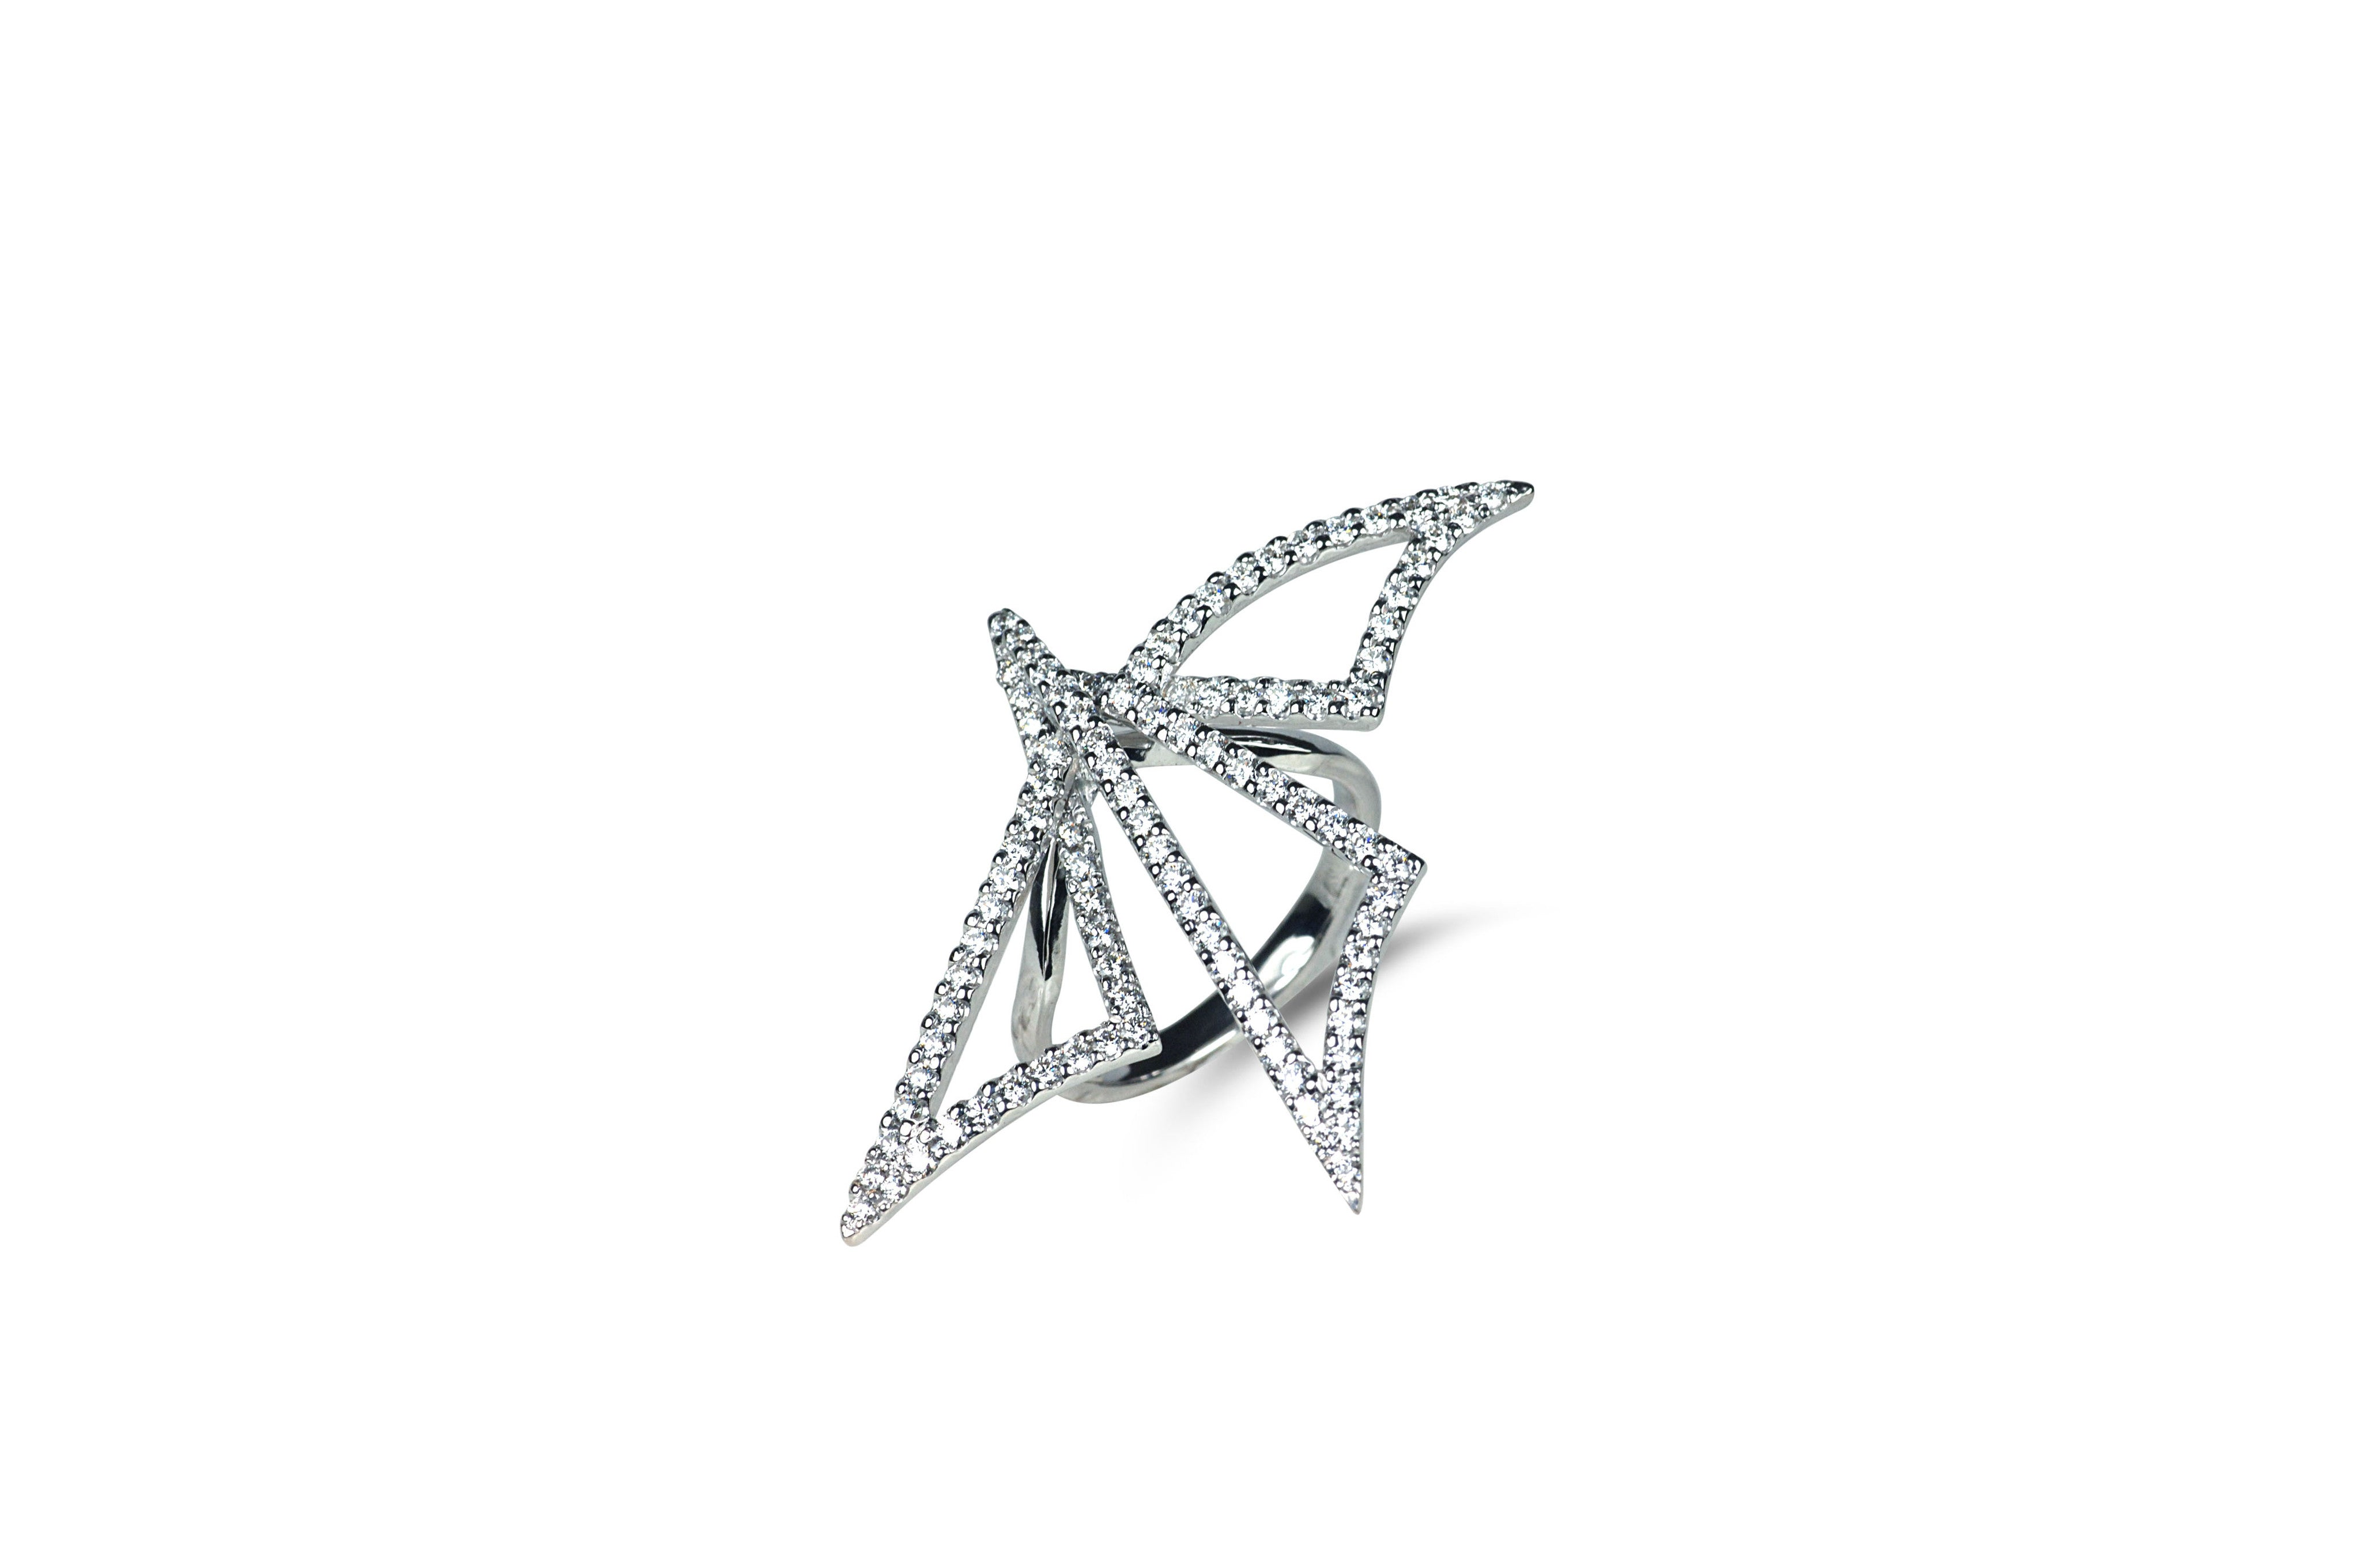 Origami dragonfly silhouette diamond ring as seen on adriana lima origami dragonfly silhouette diamond ring as seen on adriana lima jeuxipadfo Image collections